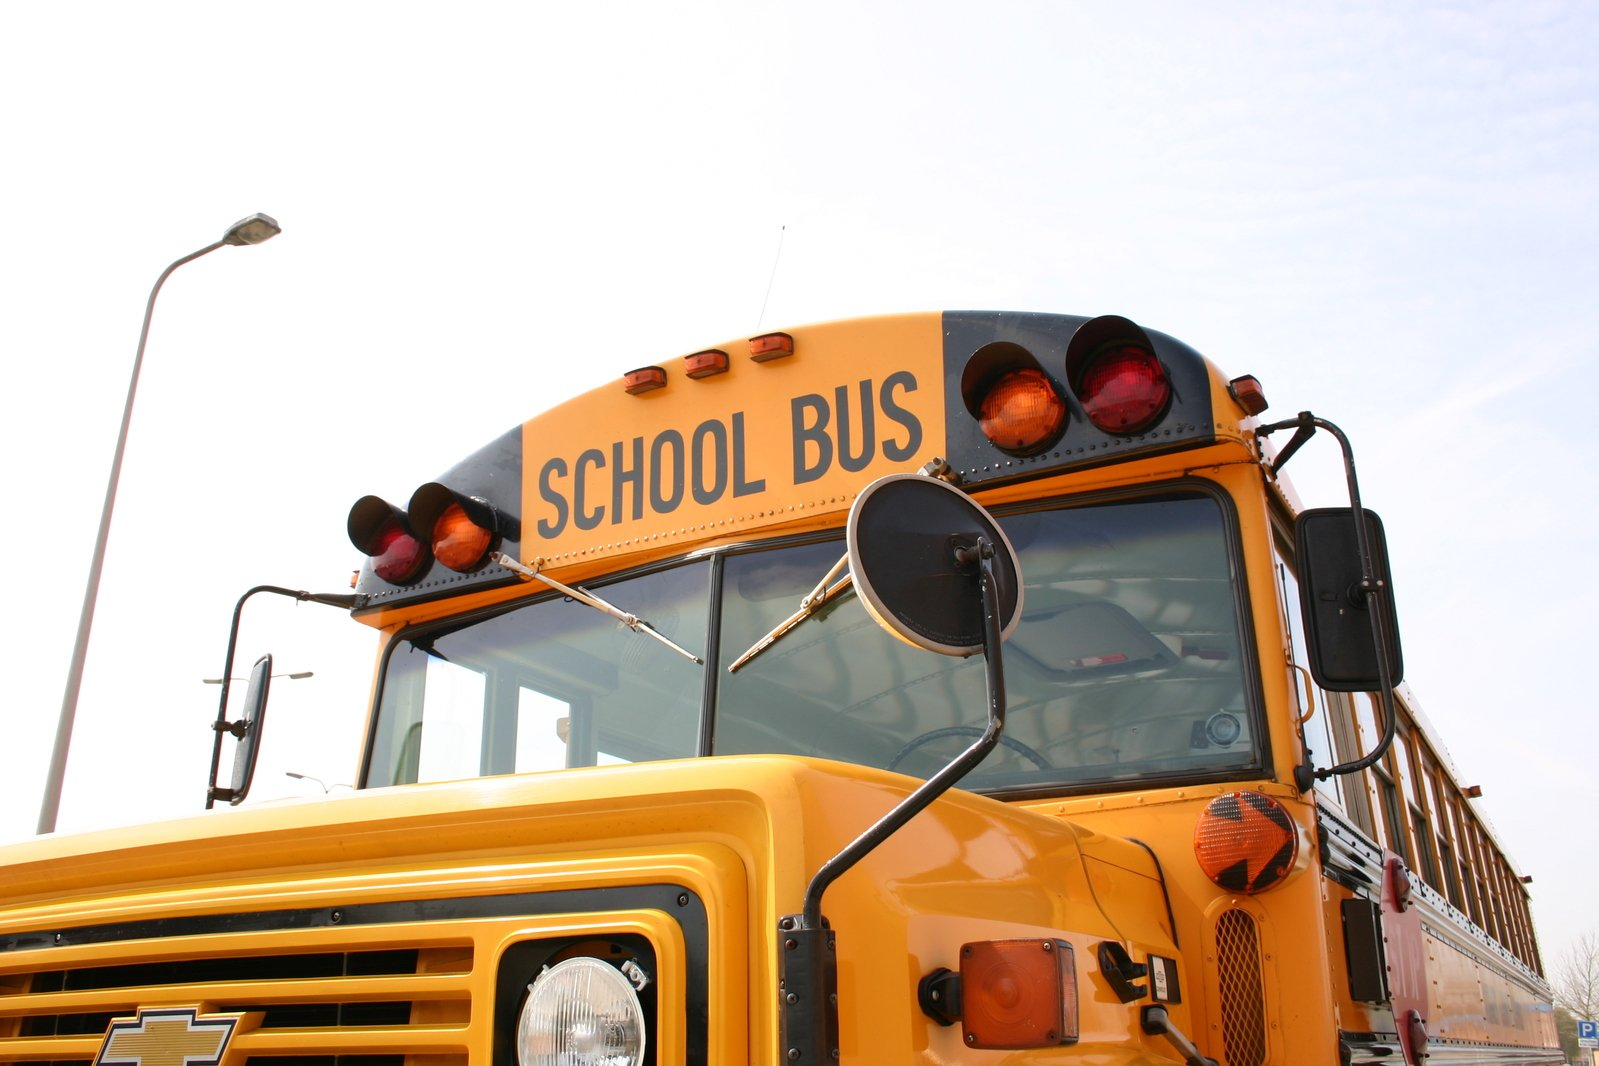 School Bus Security Cameras